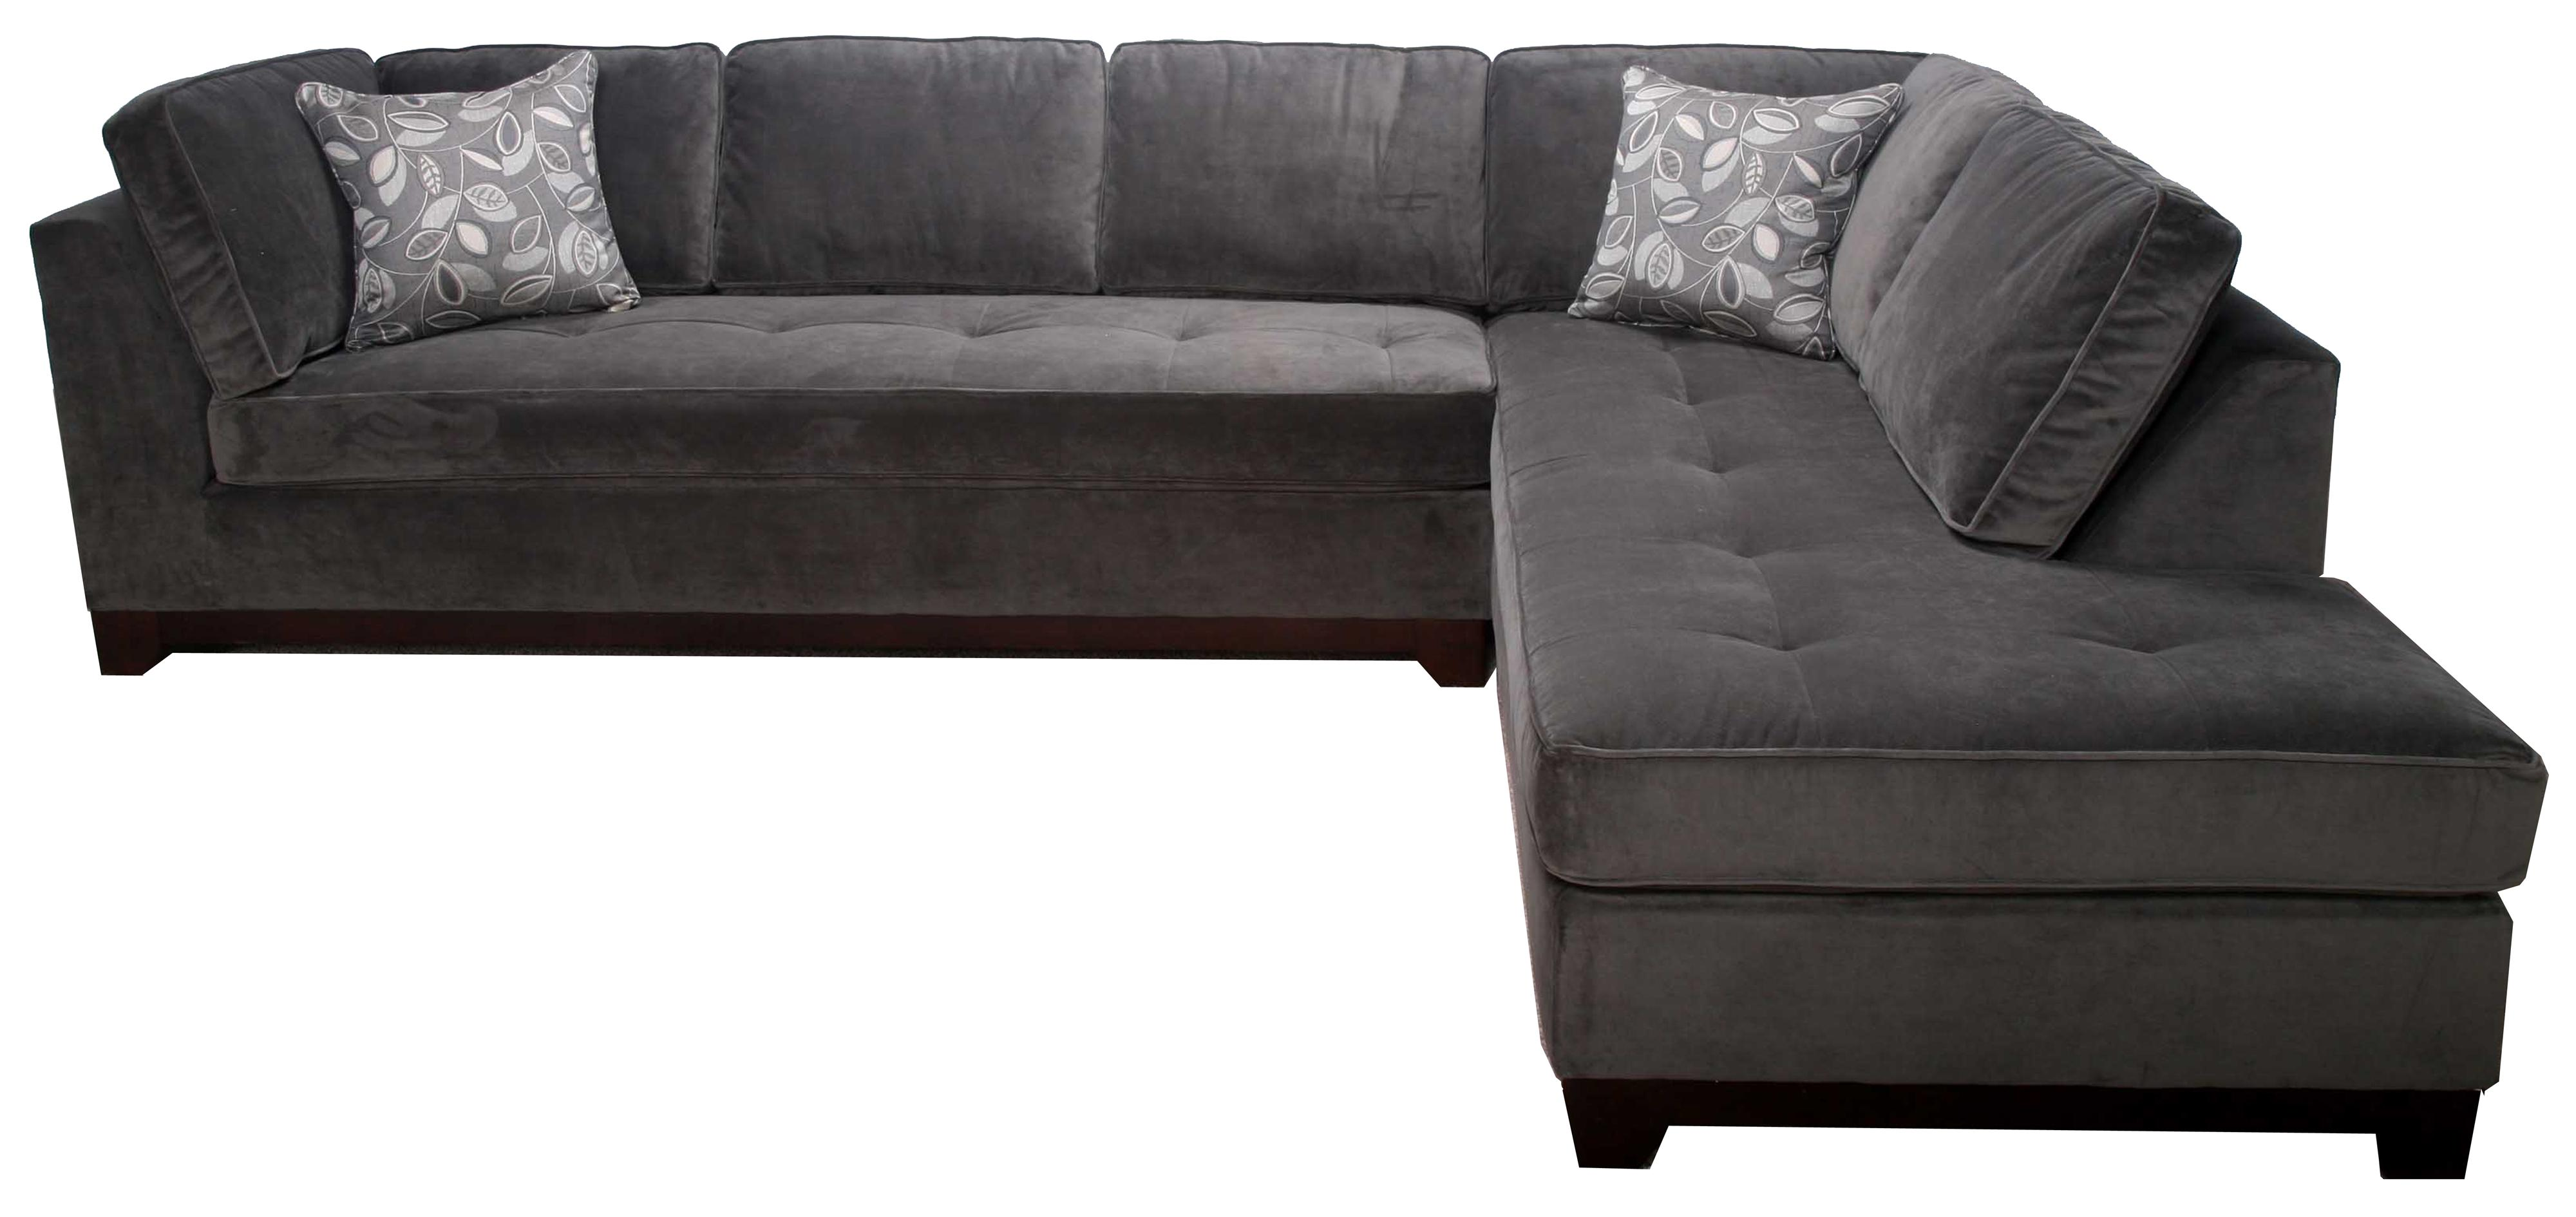 bauhaus sofas products sloane sofa harvey norman 536a contemporary 2 piece sectional with chaise